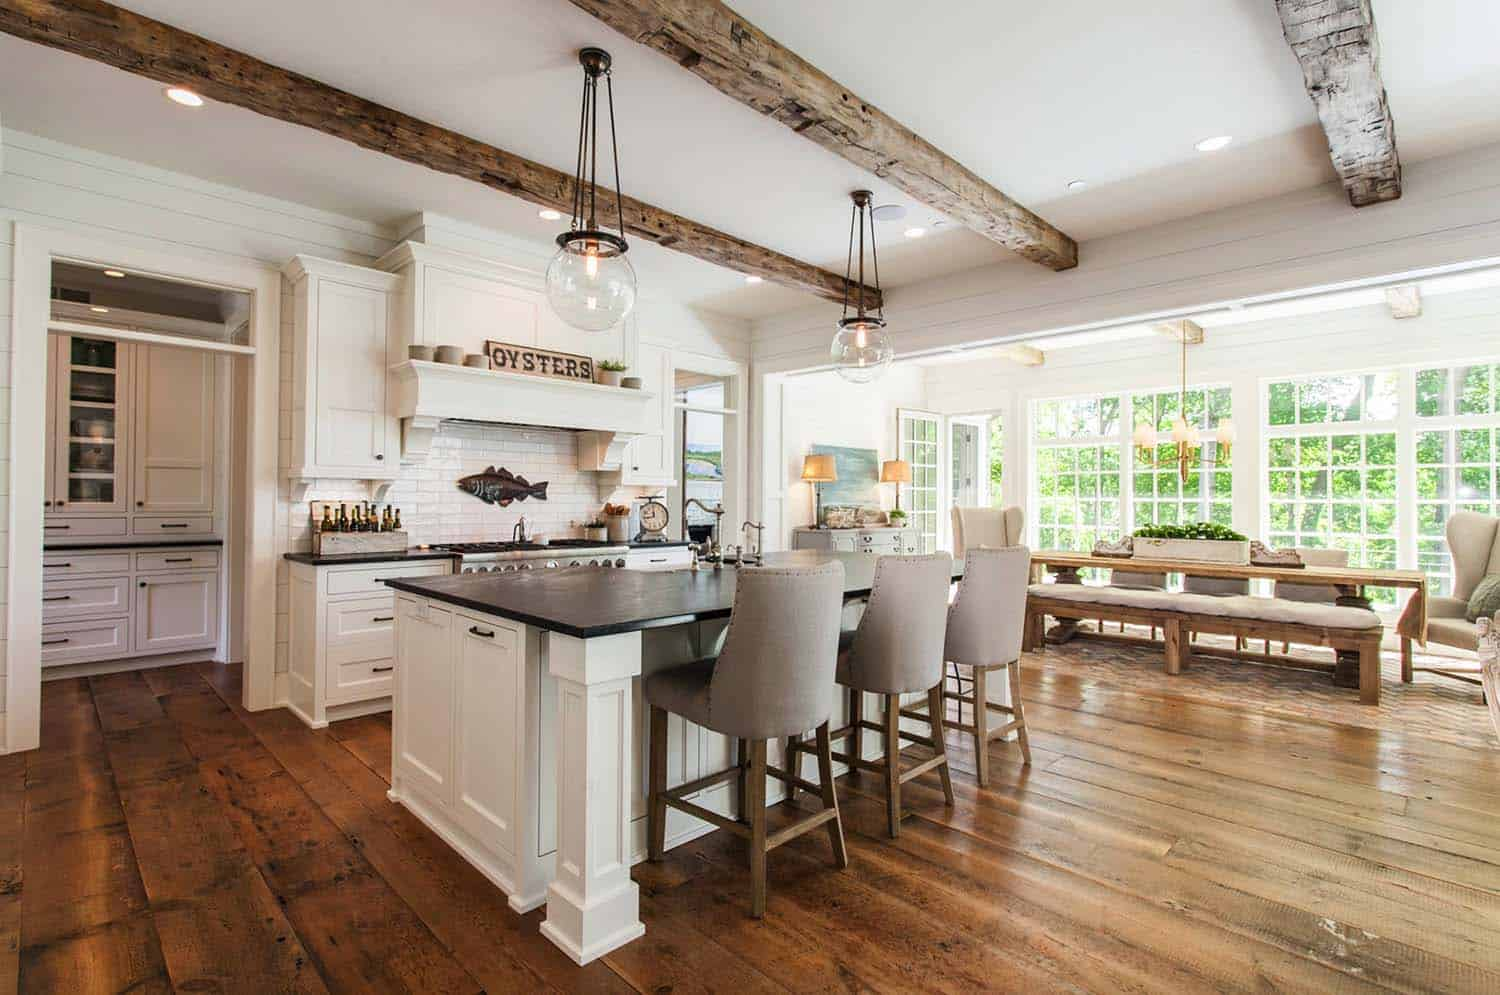 Farmhouse Style Kitchen Design Ideas to Inspire You